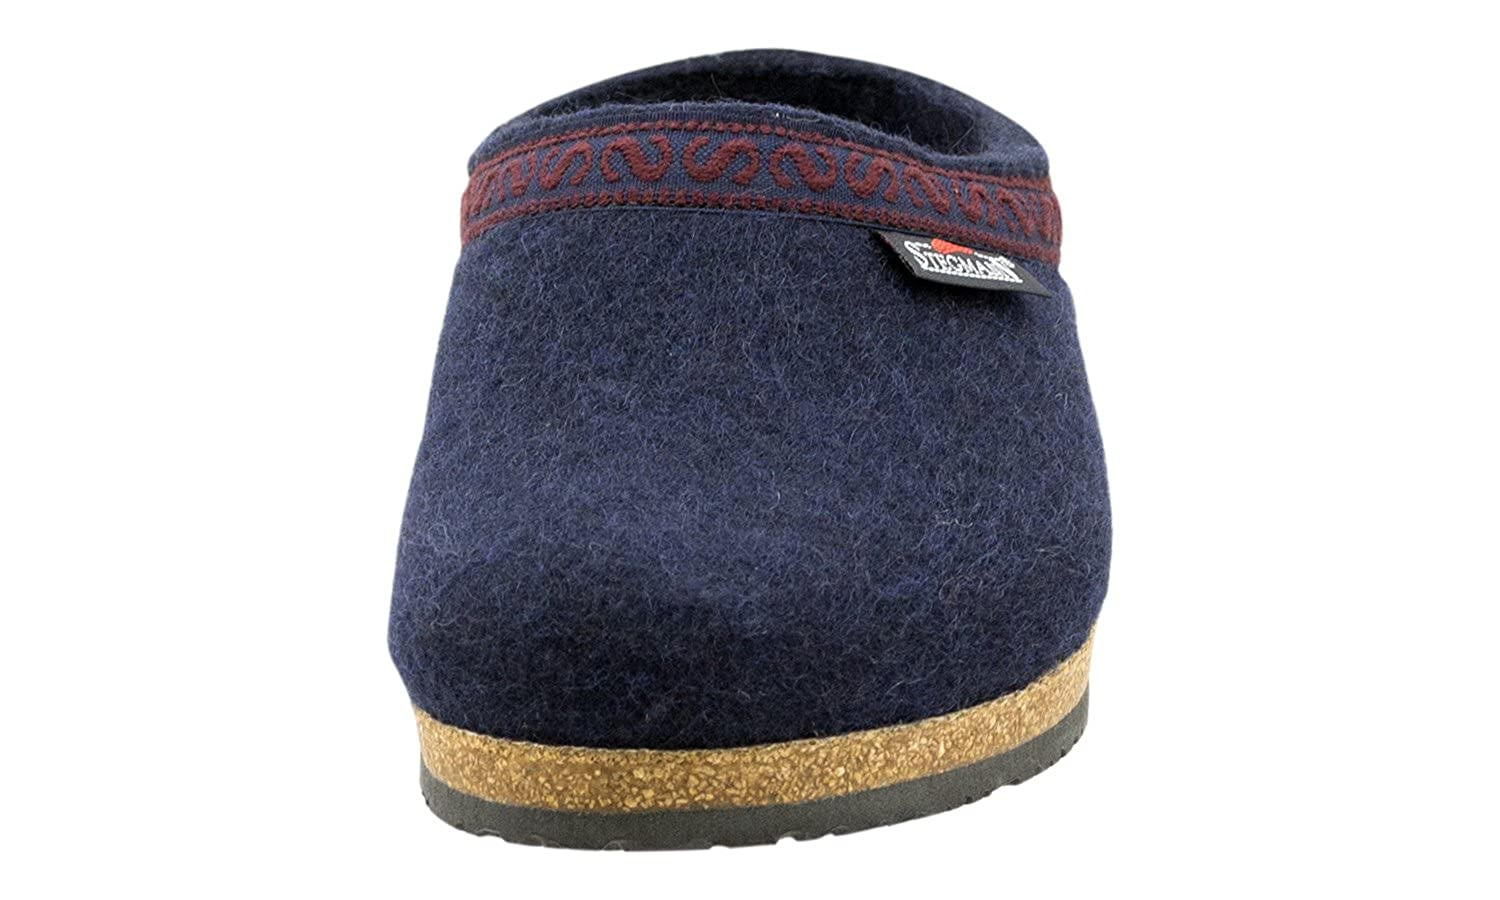 Stegmann Men/'s Wool Clog M108 Navy